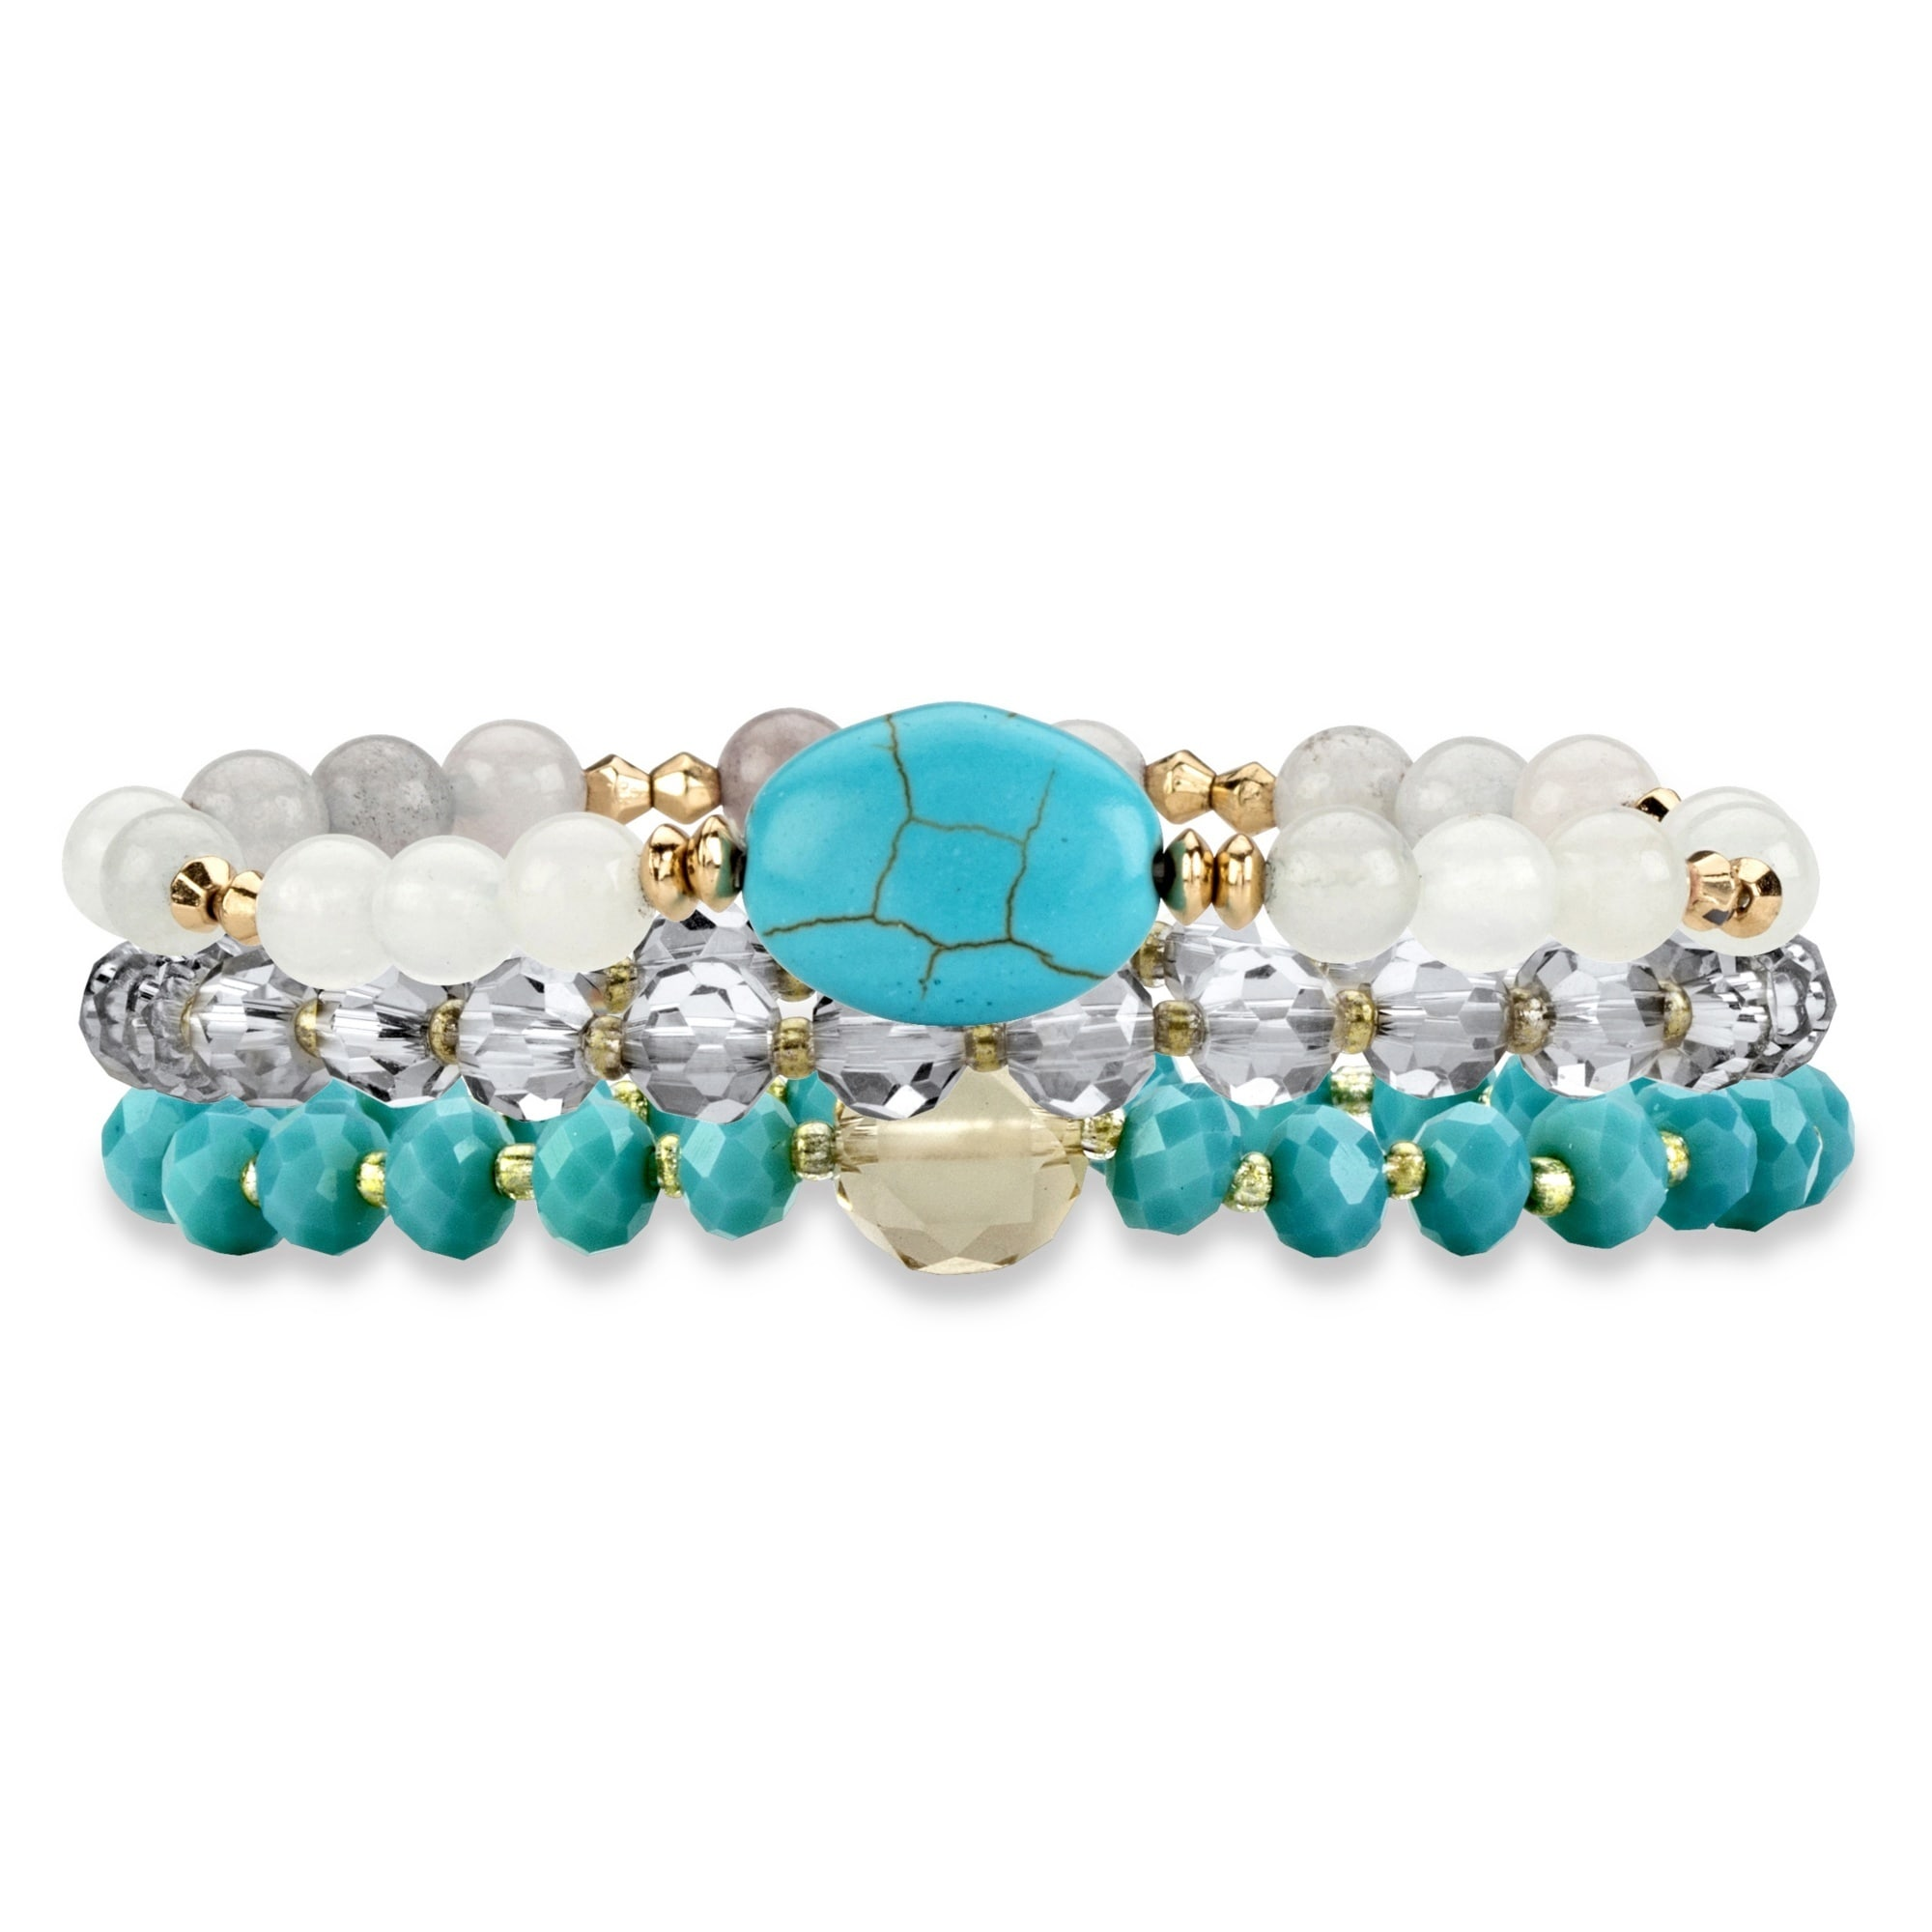 Simulated Turquoise And White Triple-Strand Beaded Stretc...